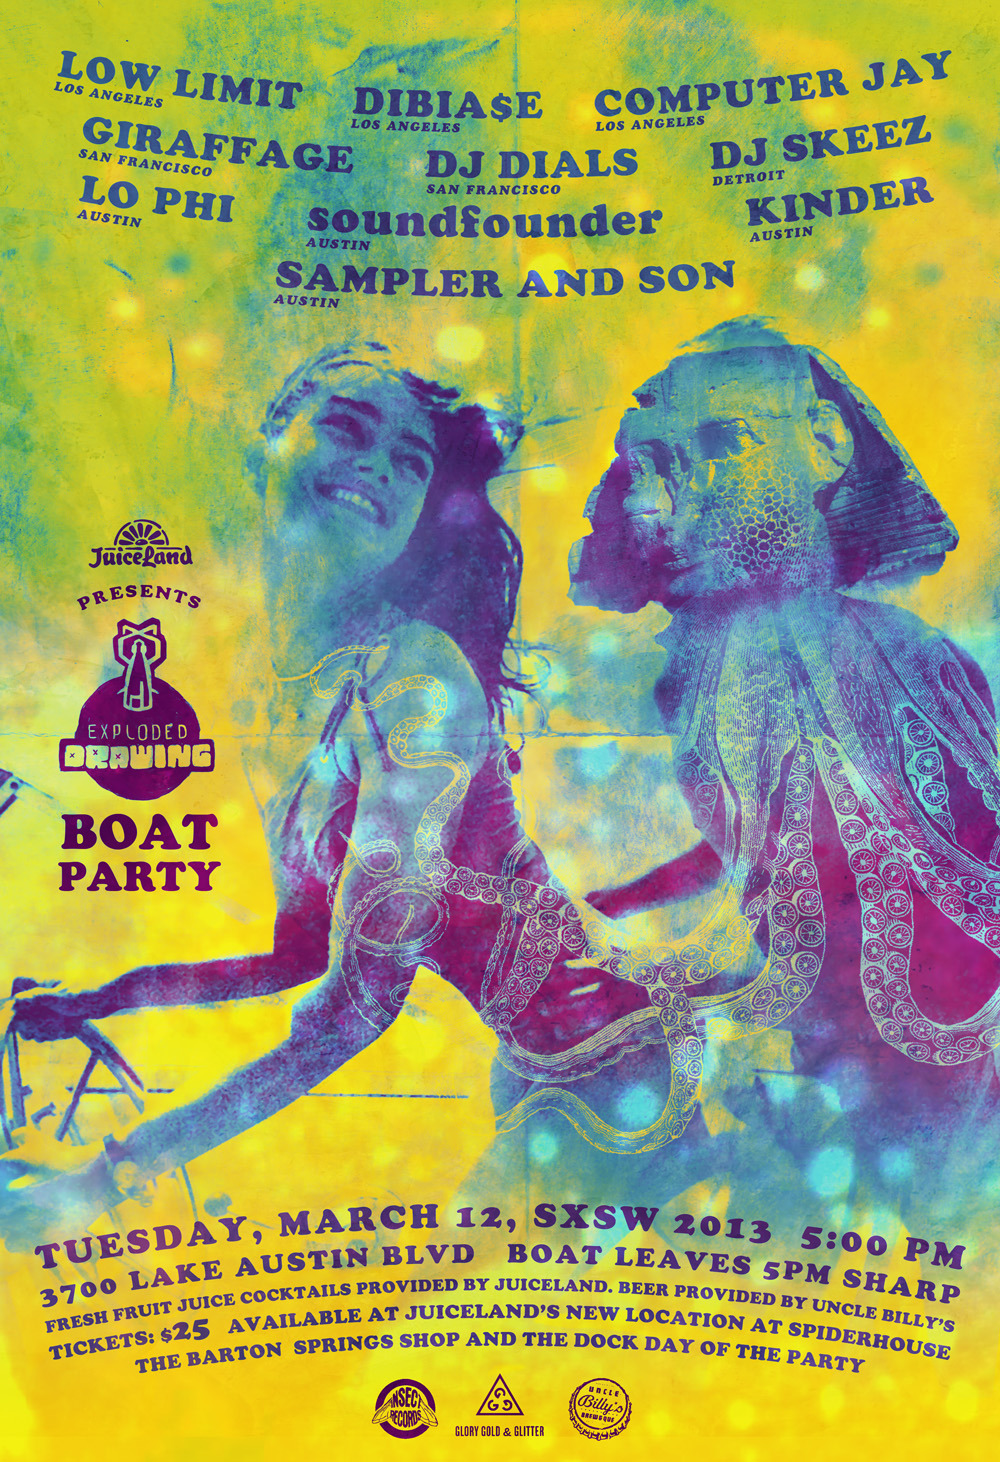 1st of Two Events we are throwing this year. Tuesday March 12, 2013. Boat leaves at 5pm and returns back at 9pm.  You can get tickets by going to JUICELAND here in Austin, TX. We will also have a few tickets at the dock and will be first come, first served. CLICK COVER FOR MORE INFO